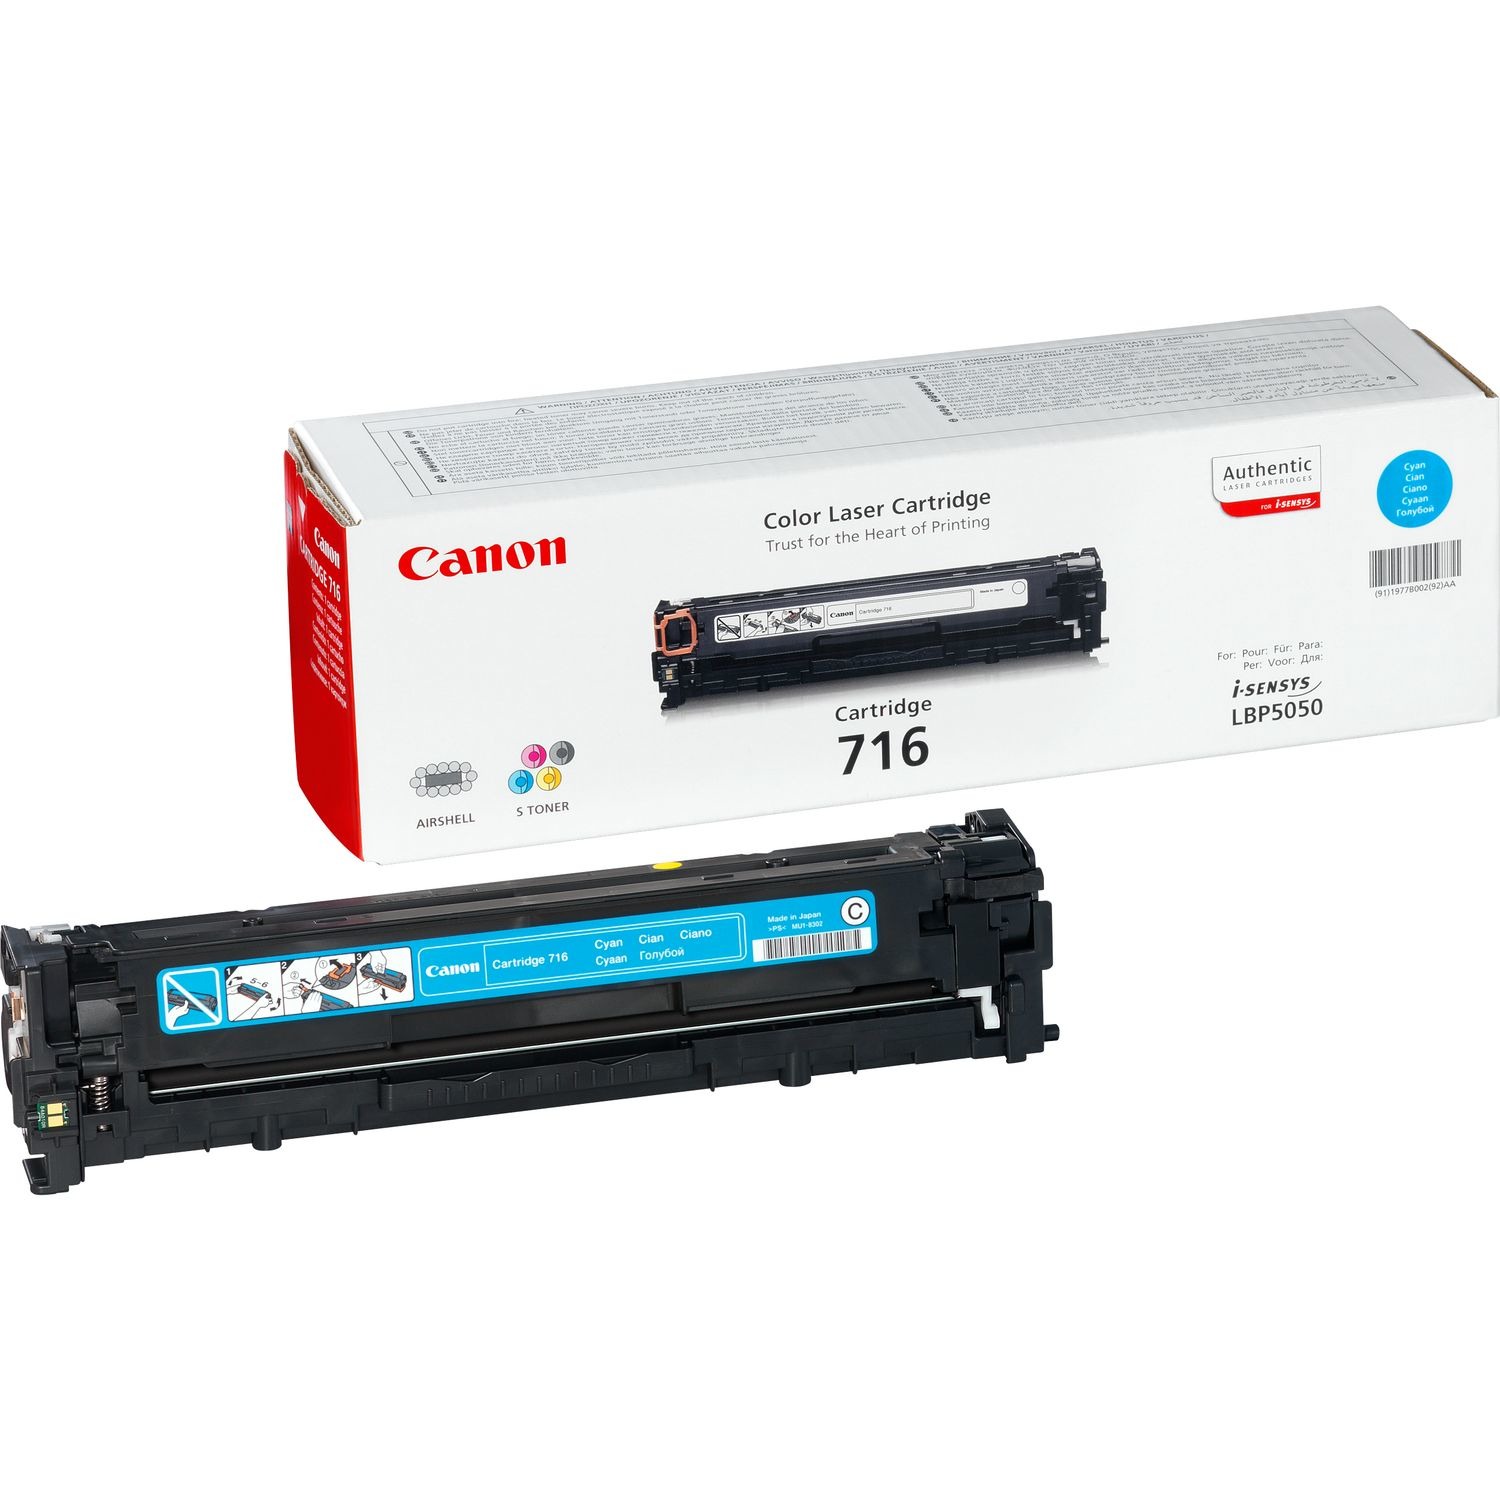 Remanufactured Canon 1979B002AA Toner Cartridge Cyan LBP 5050 (1.4k) 1979B002AA - rem01